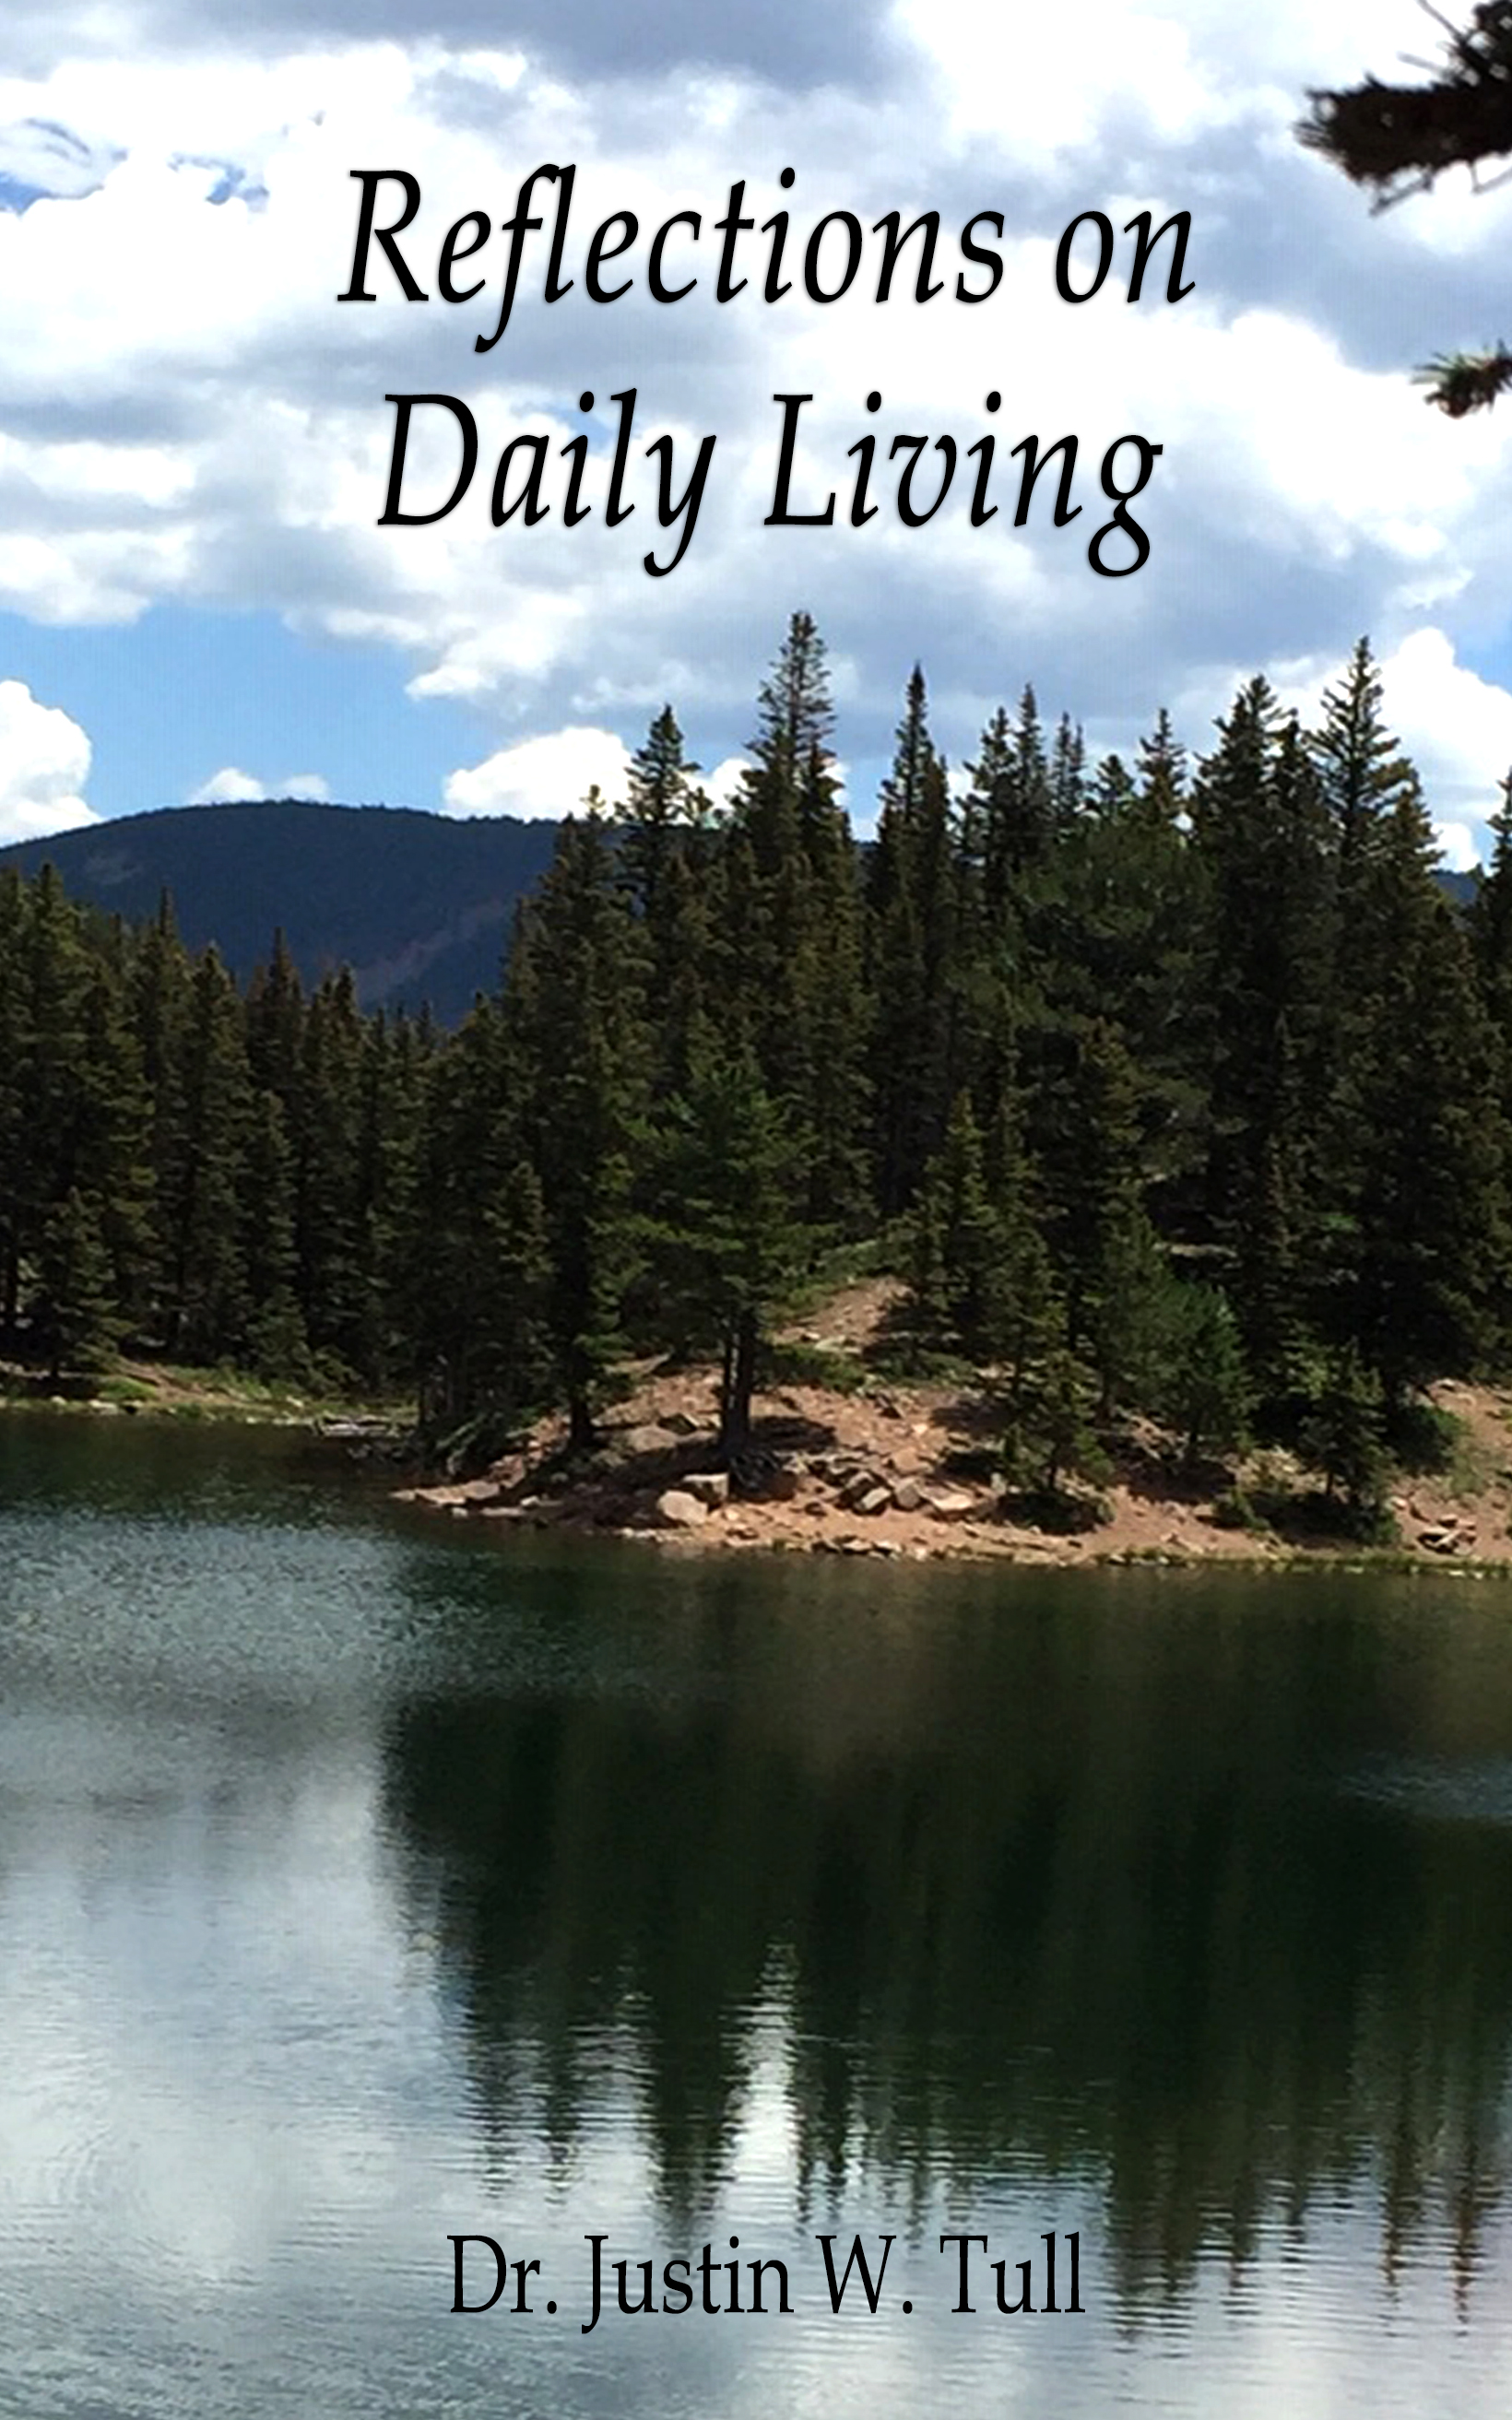 Reflections on Daily Living